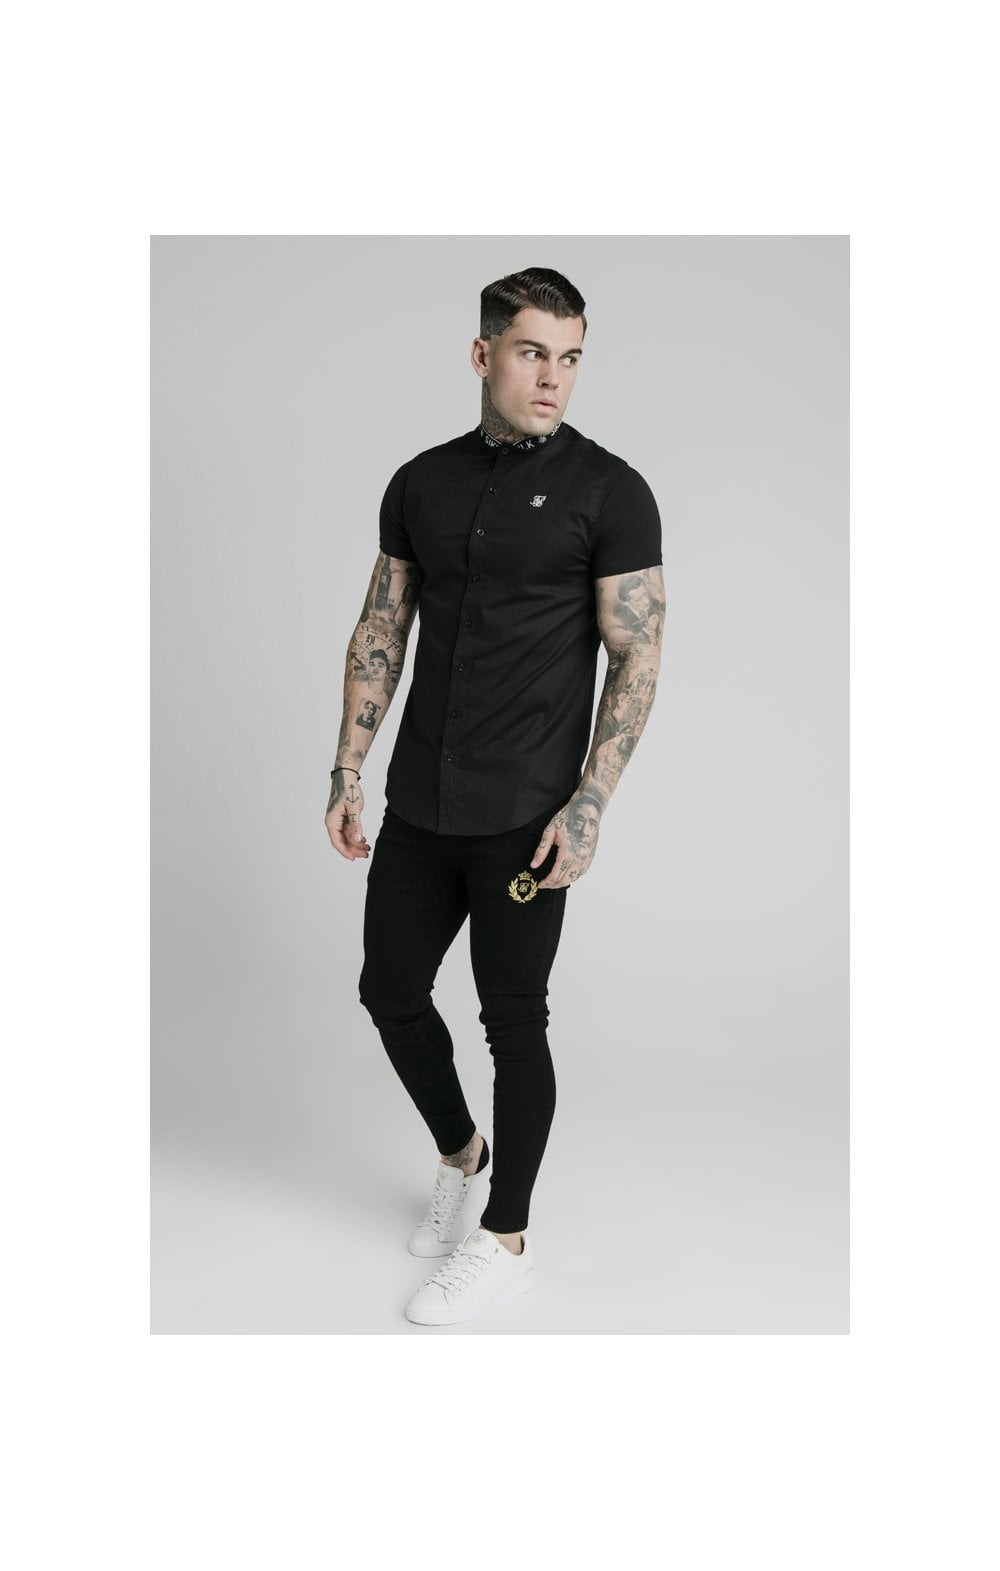 SikSilk S/S Tape Collar Shirt - Black (2)